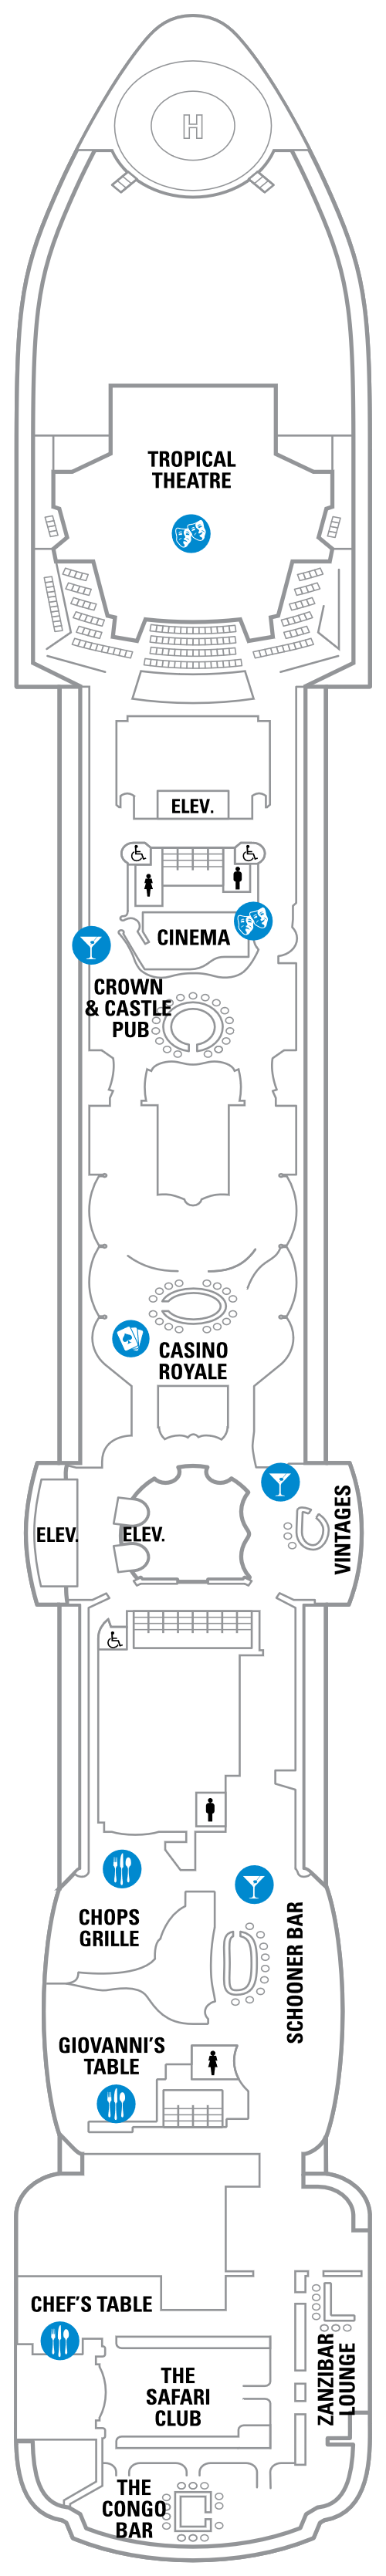 Serenade Of The Seas Deck 6 layout